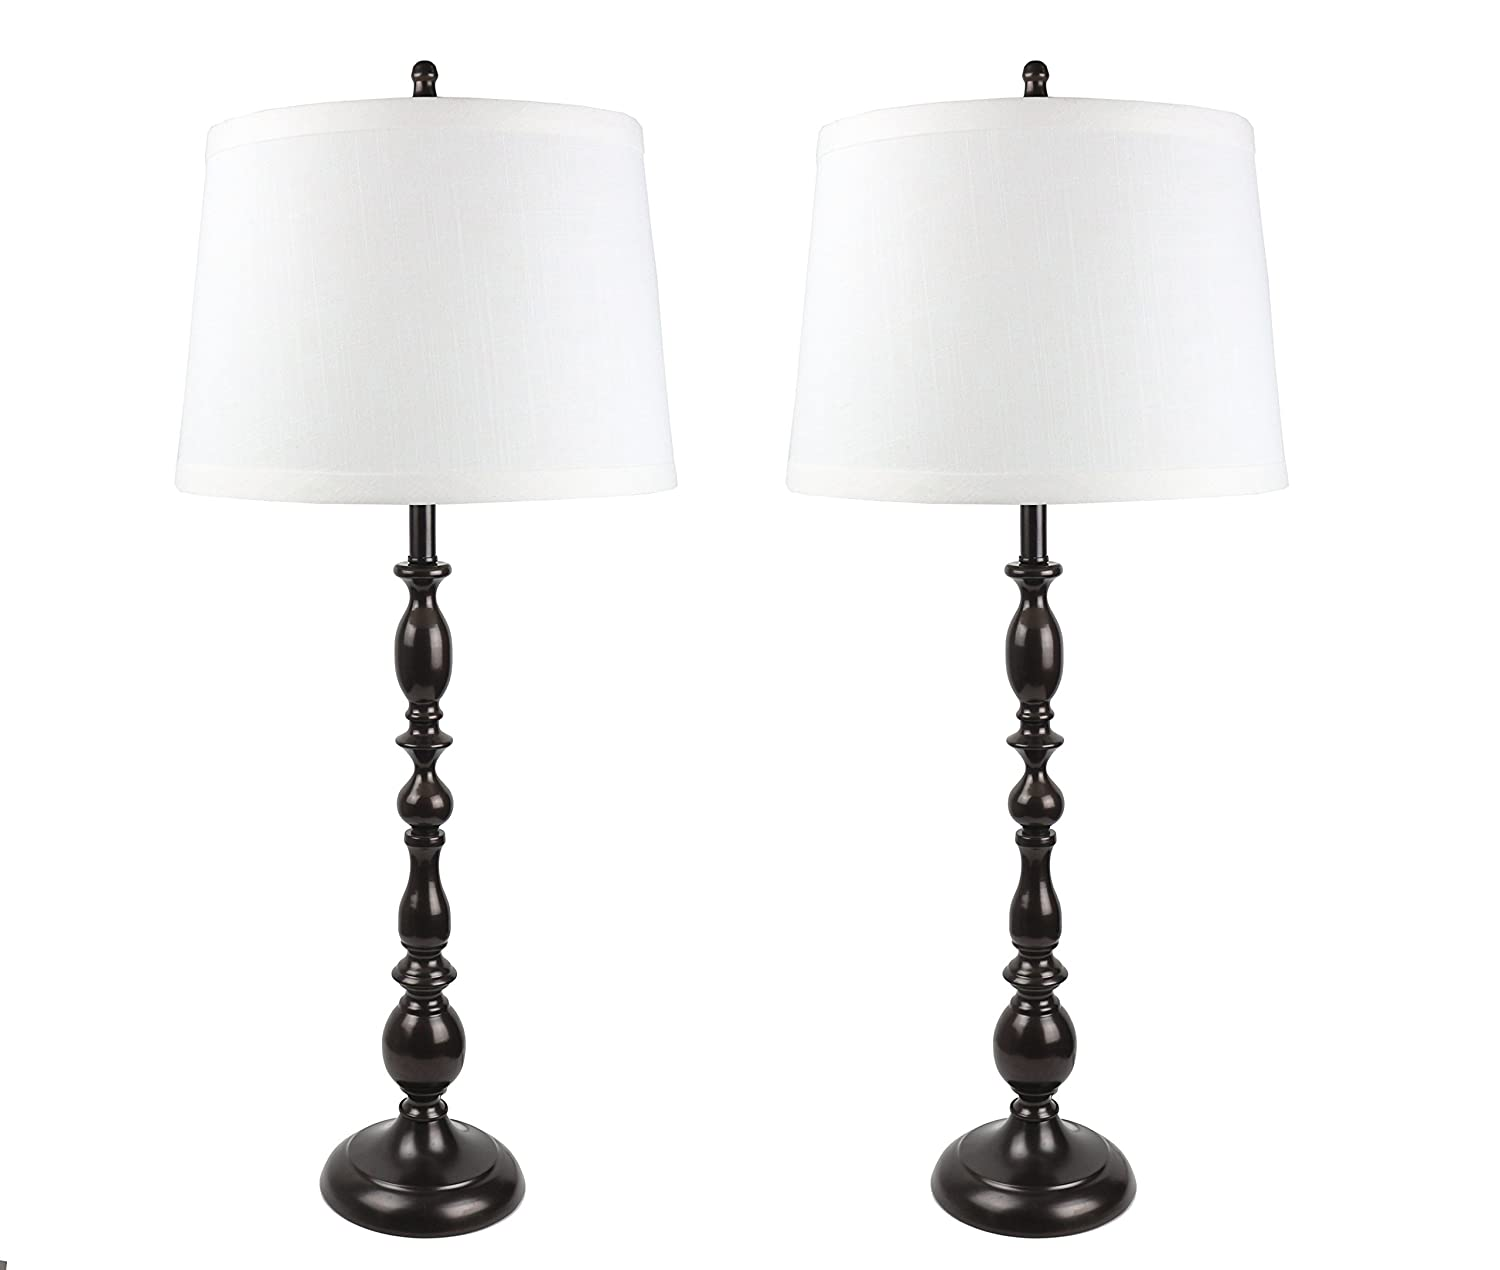 Urbanest Parker Set Of 2 Oil Rubbed Bronze Table Lamps With Off